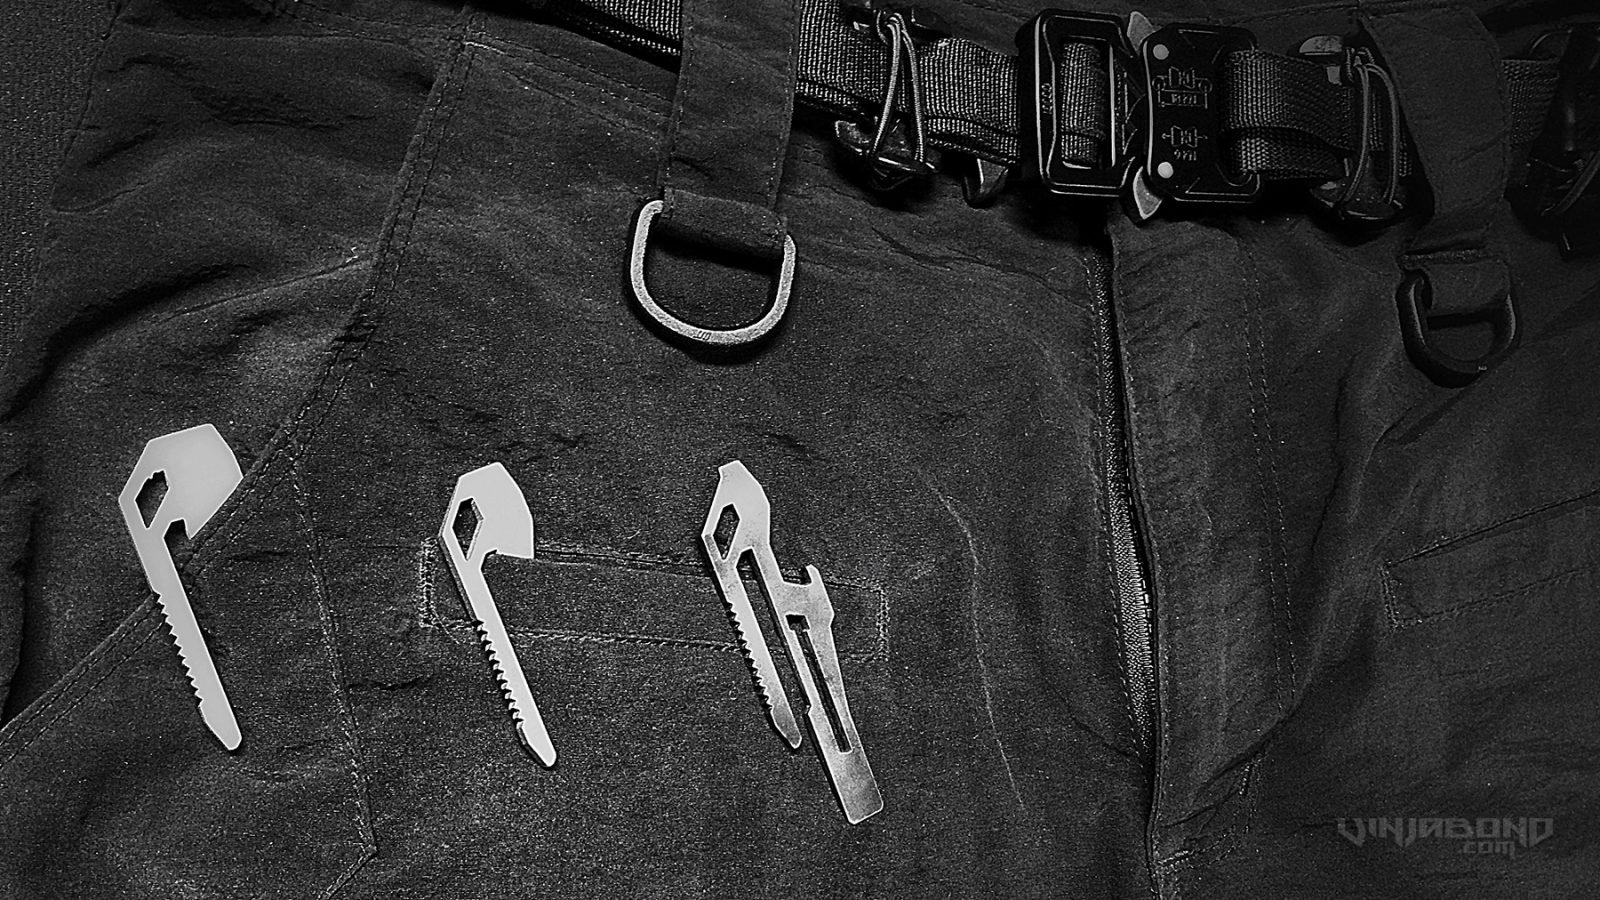 - Obstructures Tool as an EDC Gear Clip -